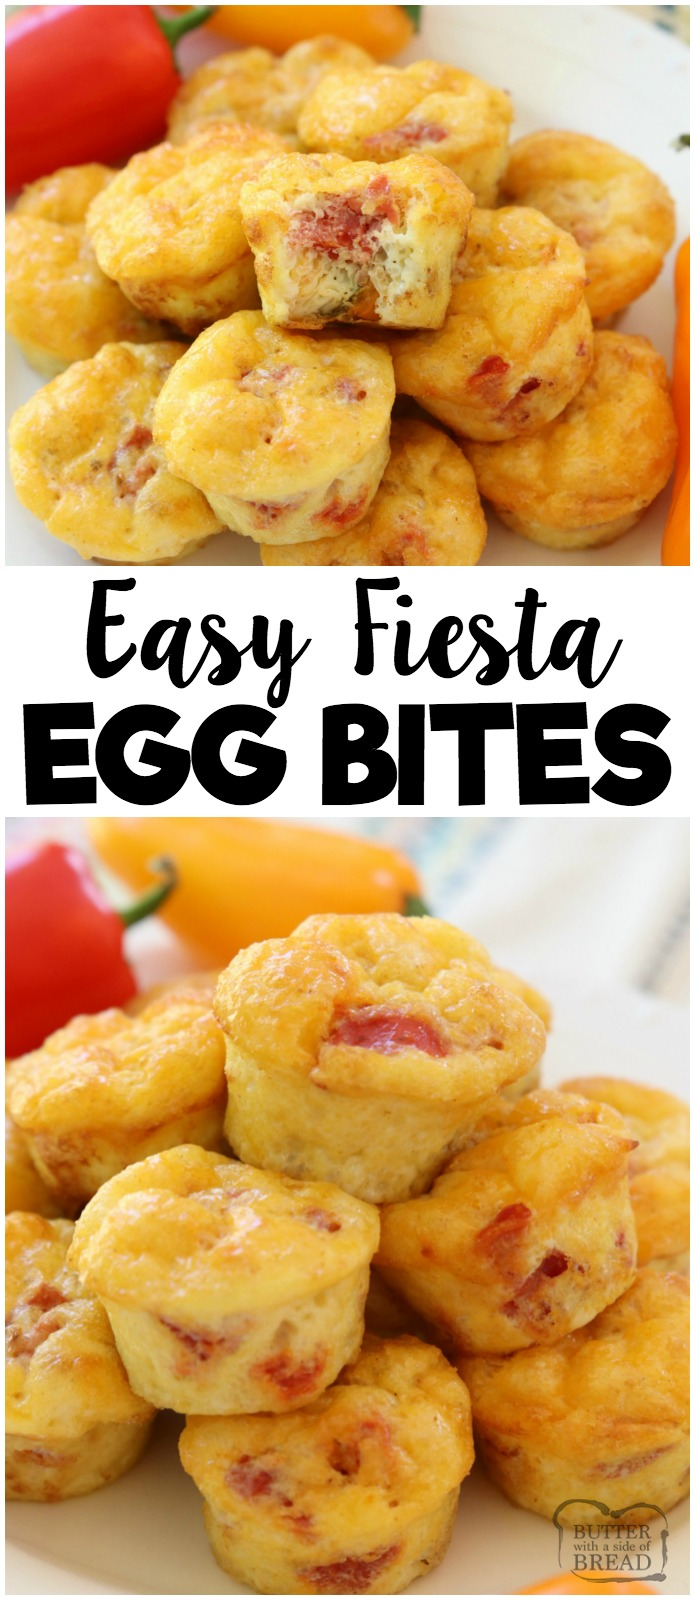 Fiesta Egg Bites are perfect for a hearty & flavorful breakfast, lunch or dinner! Simple recipe made with eggs, tomatoes, cheese and baked into bite-sized portions. Ready in under 30 minutes! #breakfast #dinner #meatless #protein #eggs #food #recipe from BUTTER WITH A SIDE OF BREAD